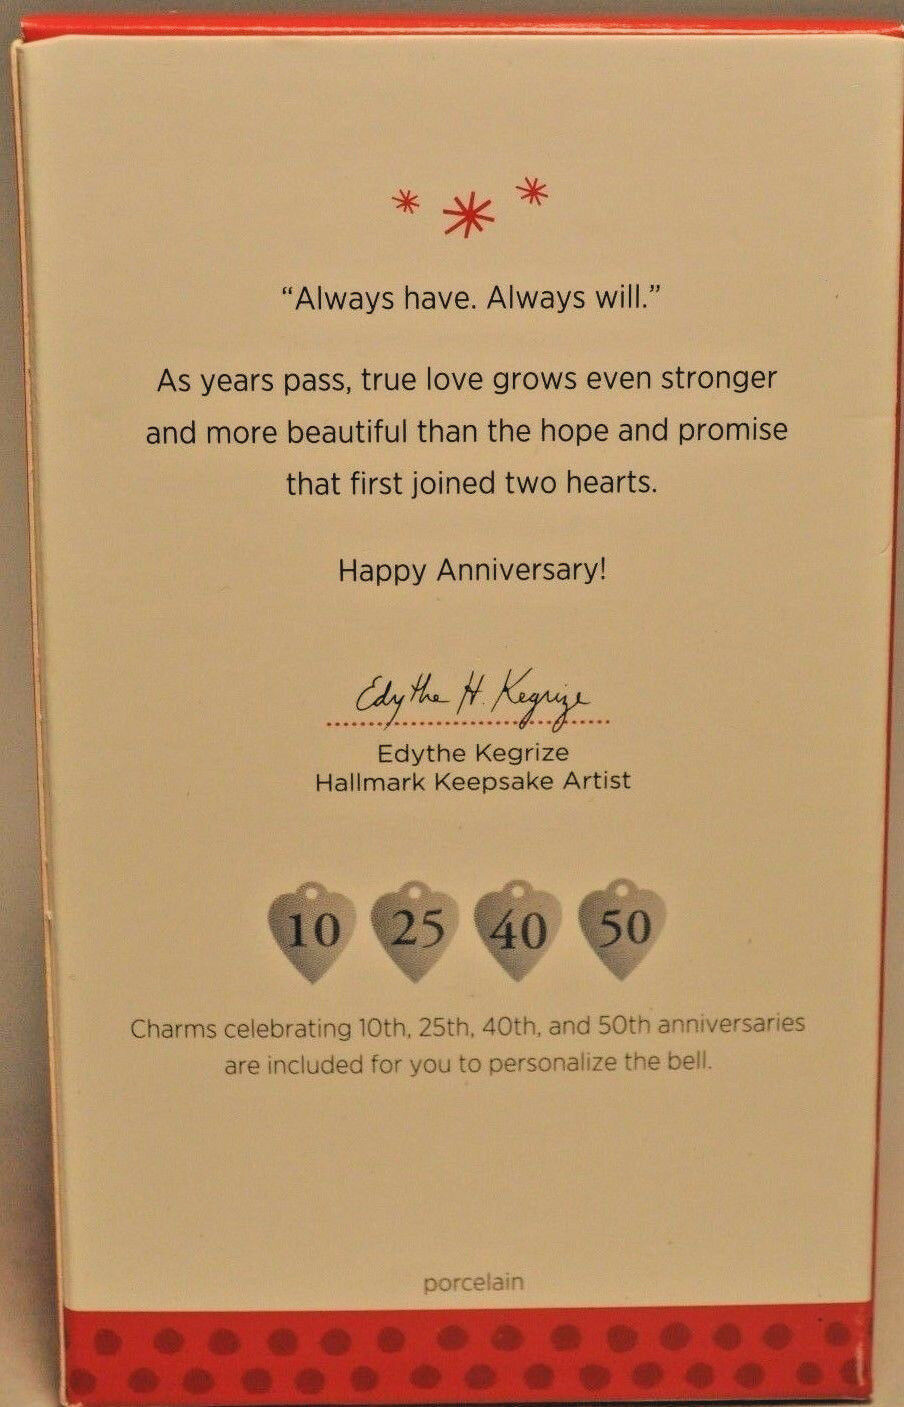 Hallmark - Anniversary Celebration Bell - Milestone Charms - Married in 2013 image 4